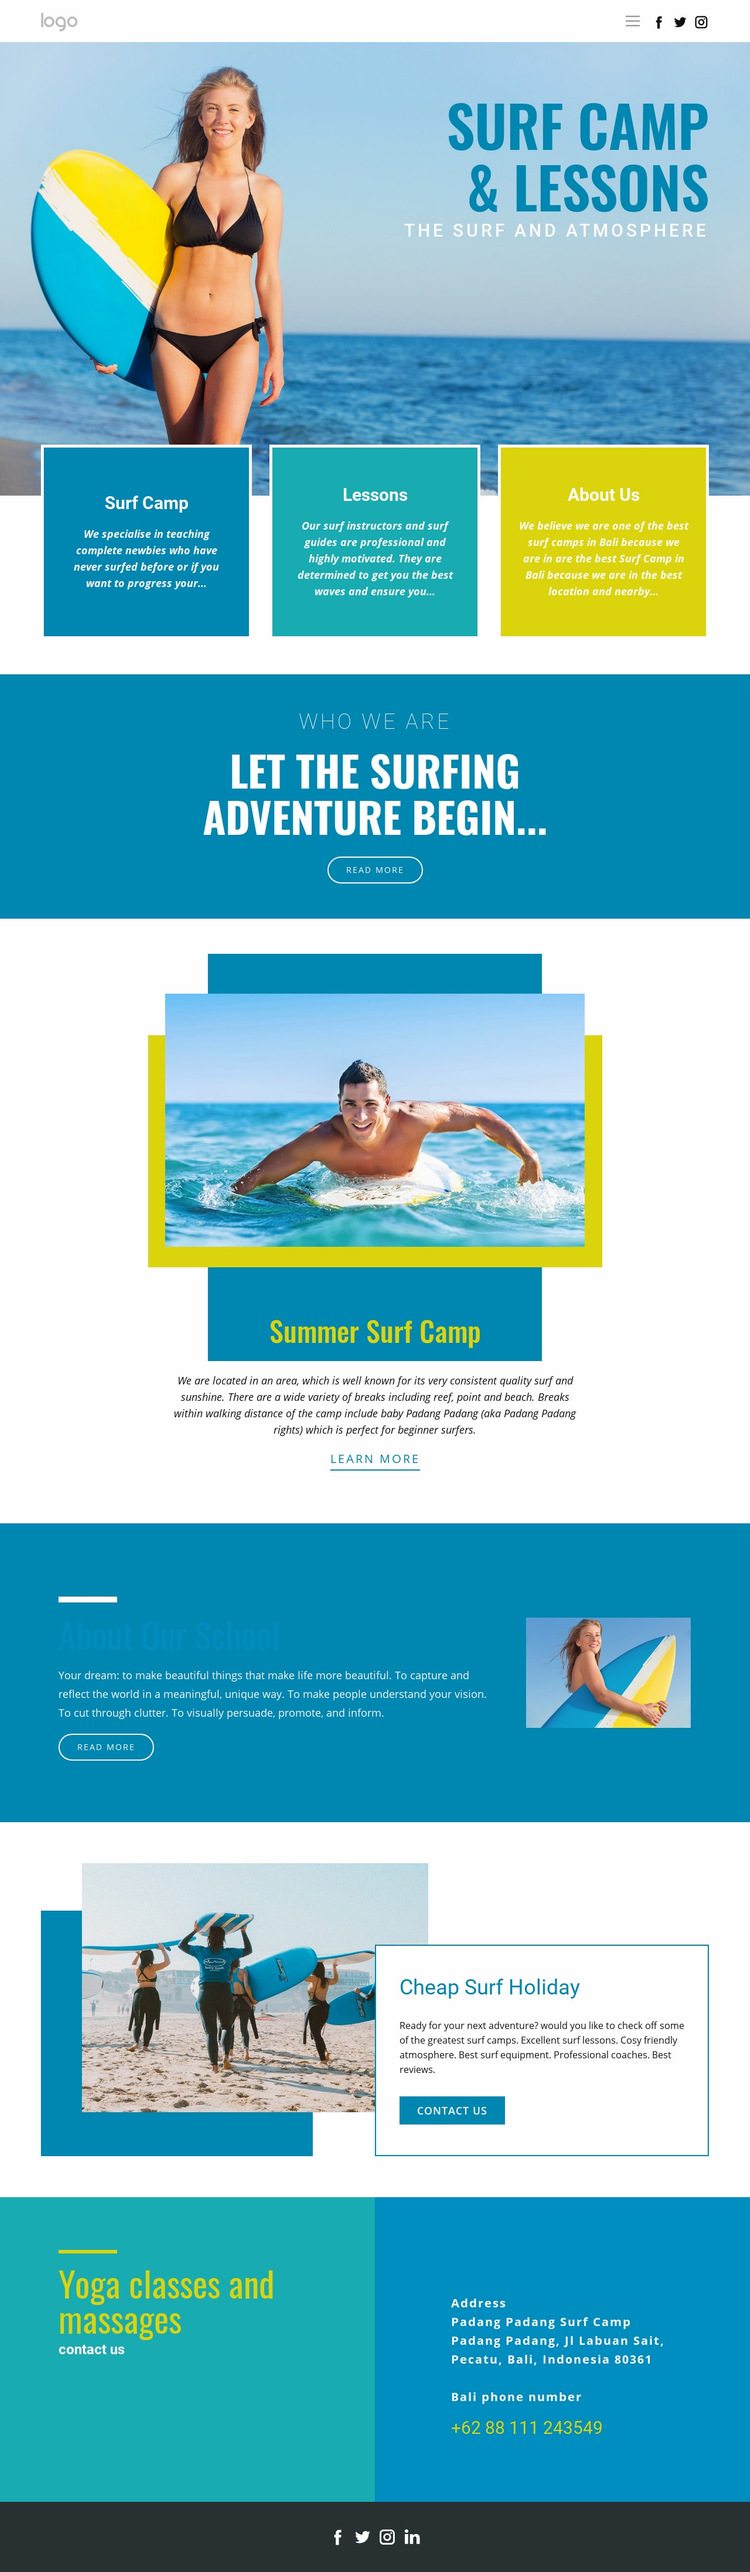 Camp for summer sports Web Page Design